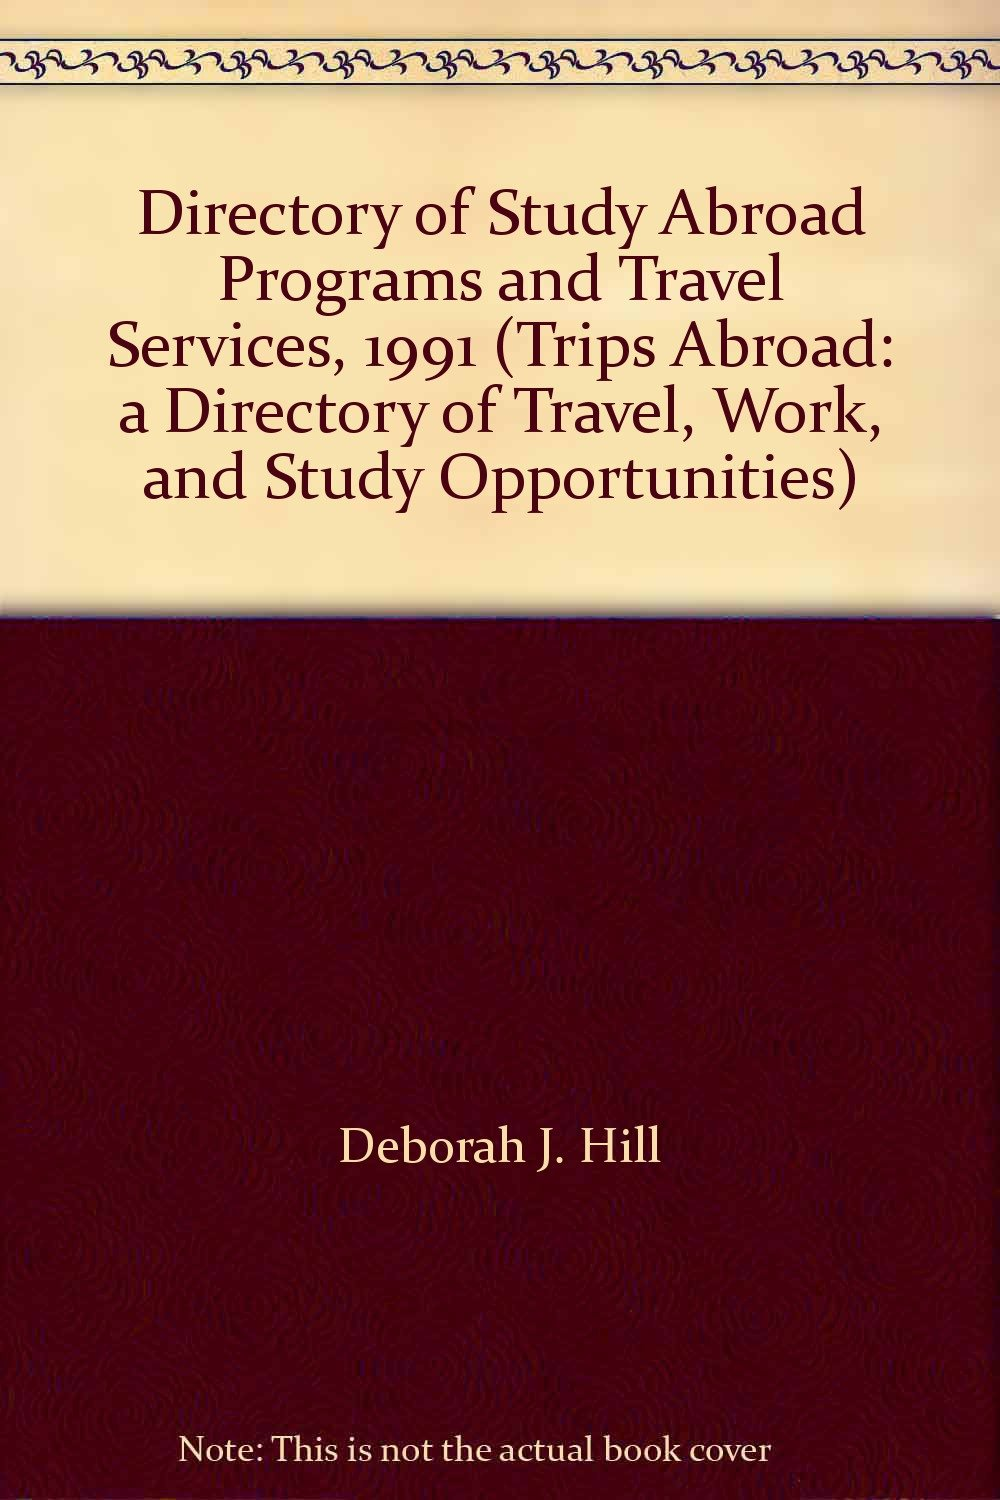 Directory of Study Abroad Programs and Travel Services, 1991 (TRIPS ABROAD: A DIRECTORY OF TRAVEL, WORK, AND STUDY OPPORTUNITIES)